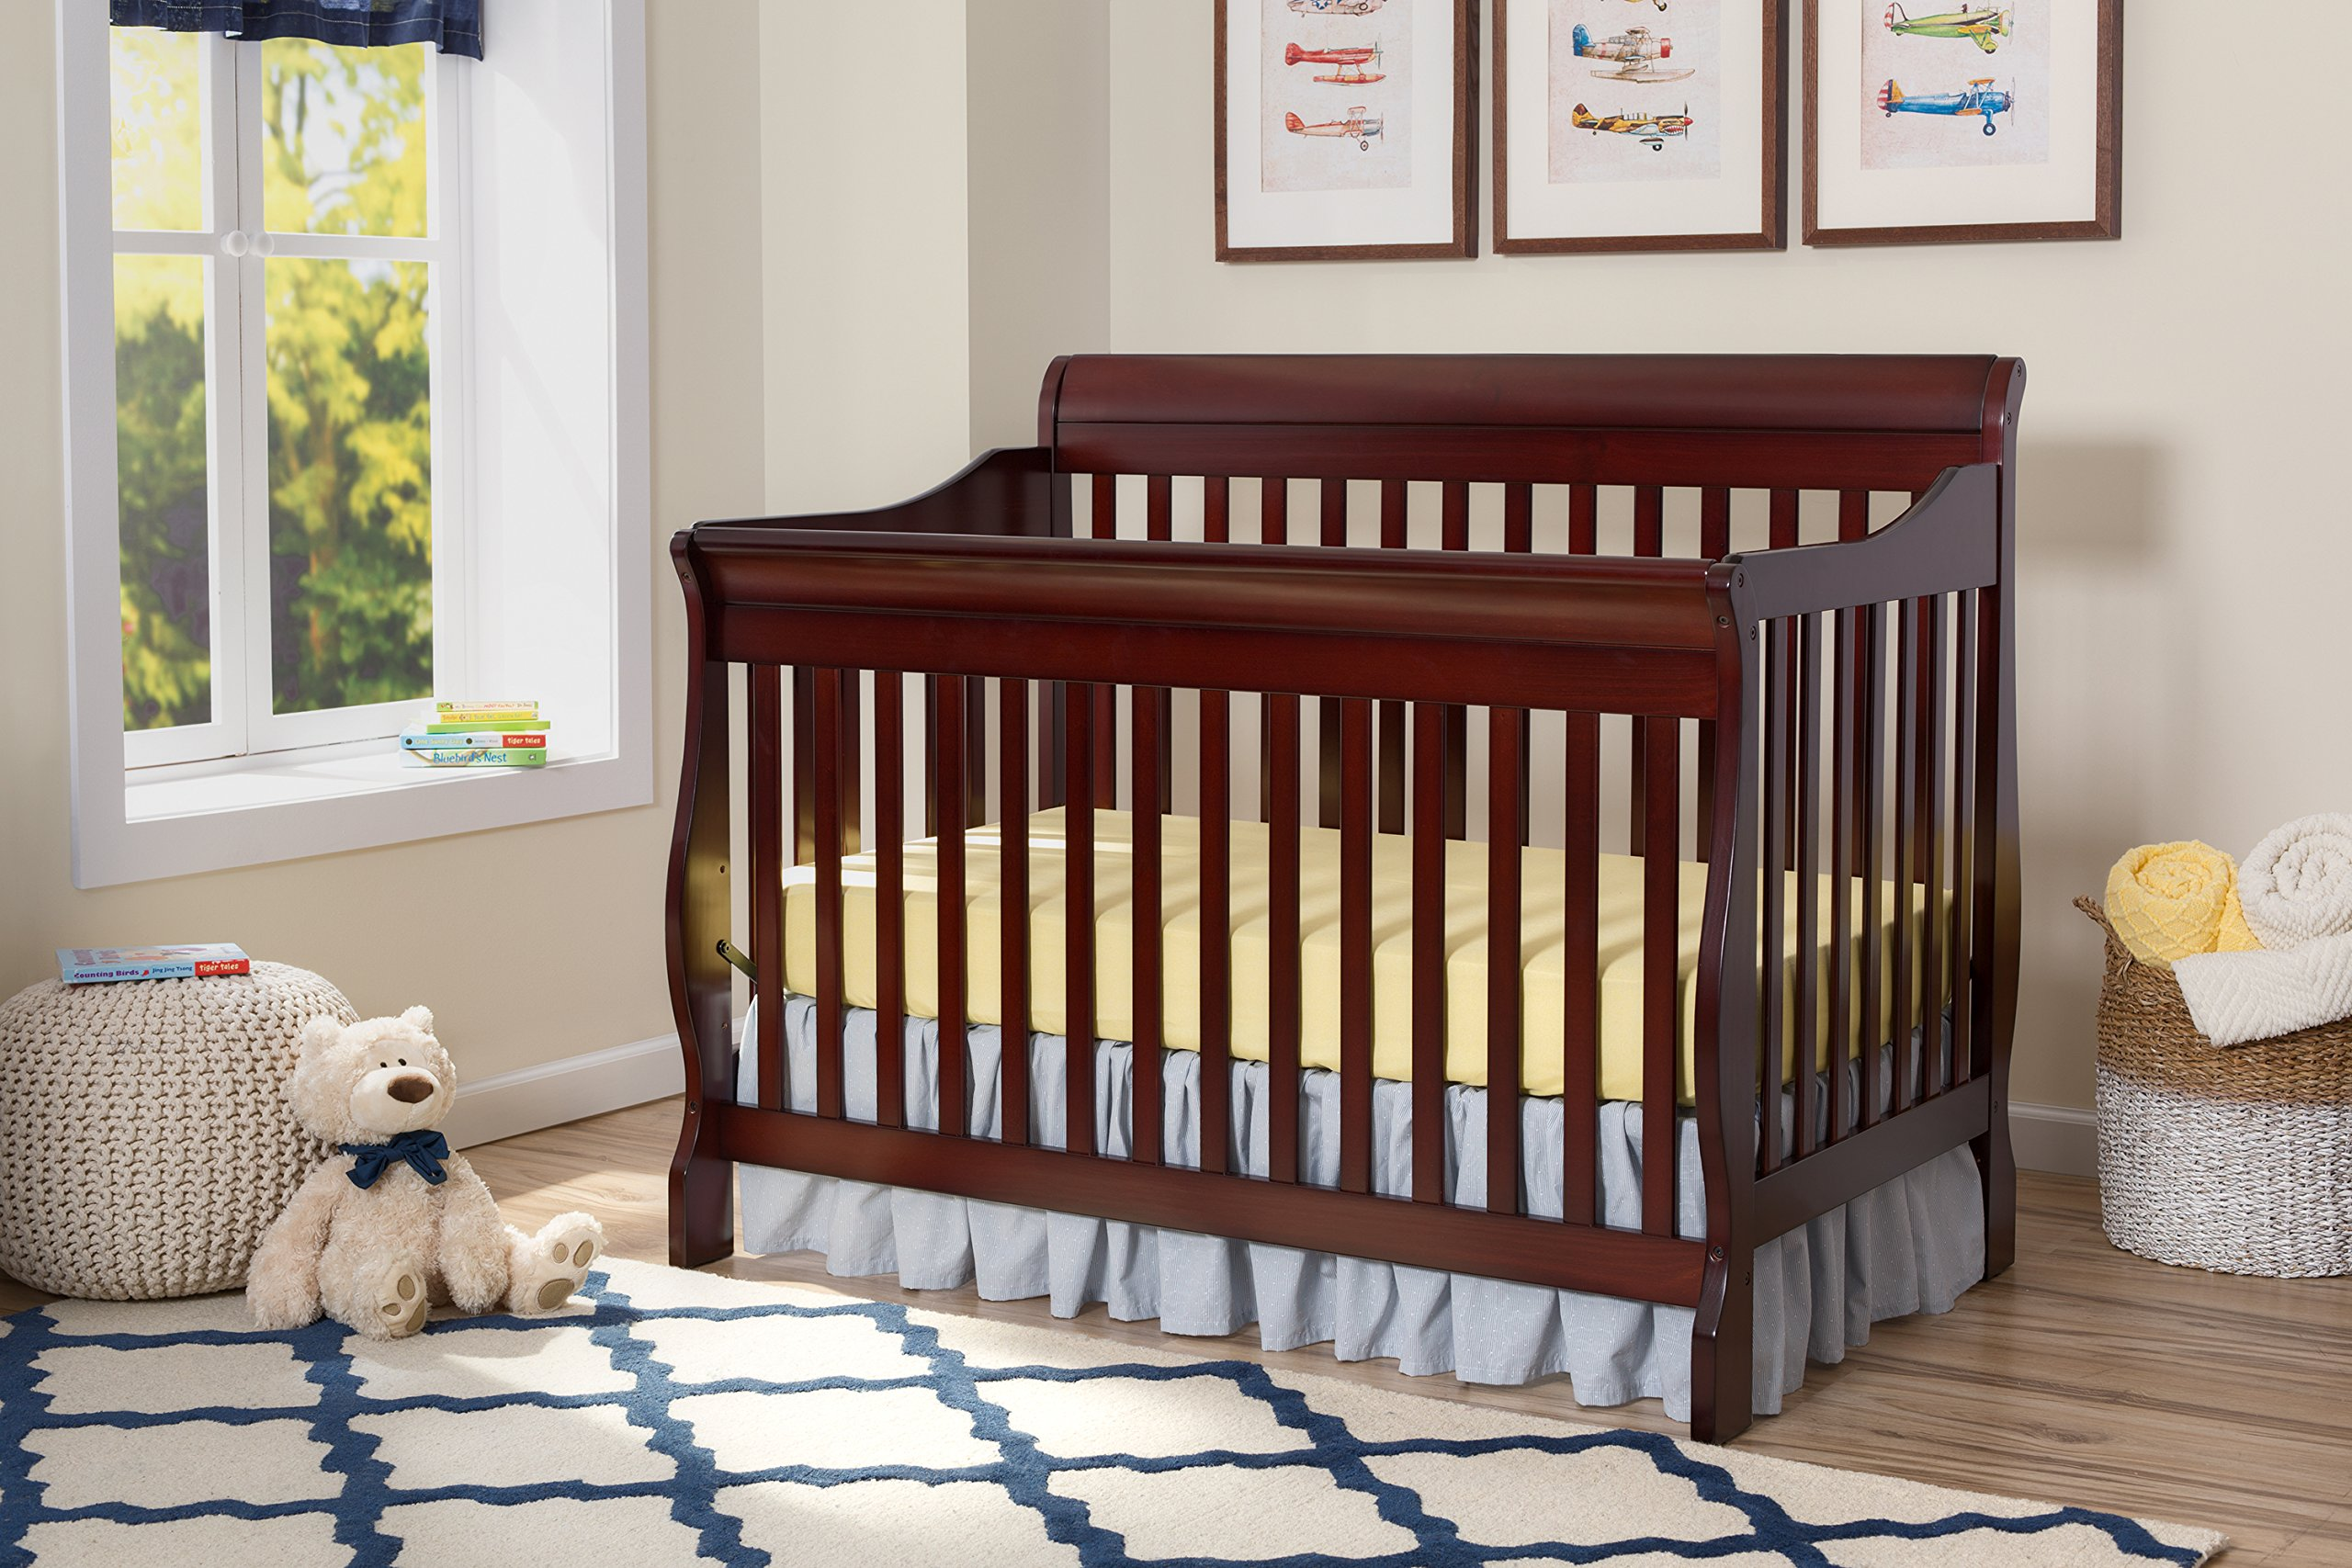 Delta Children Canton 4-in-1 Convertible Crib, Espresso Cherry by Delta Children (Image #3)